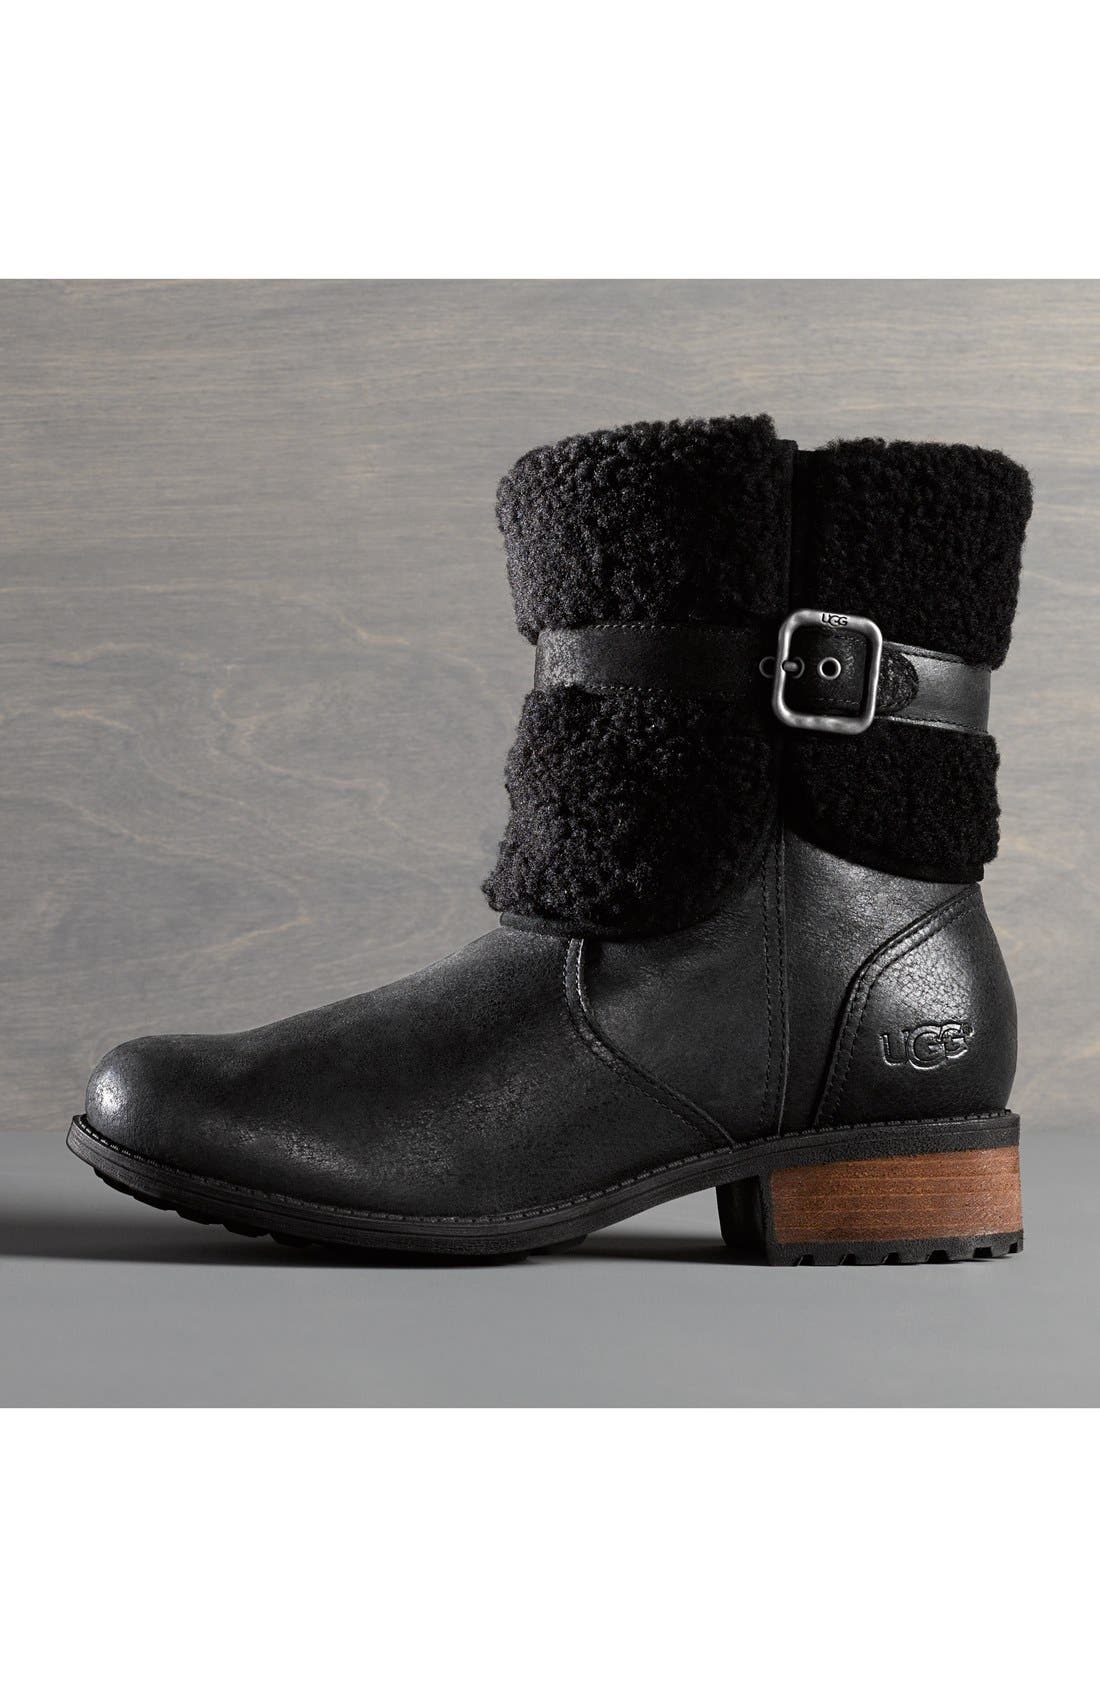 Blayre II Shearling Cuff Bootie,                             Alternate thumbnail 6, color,                             219